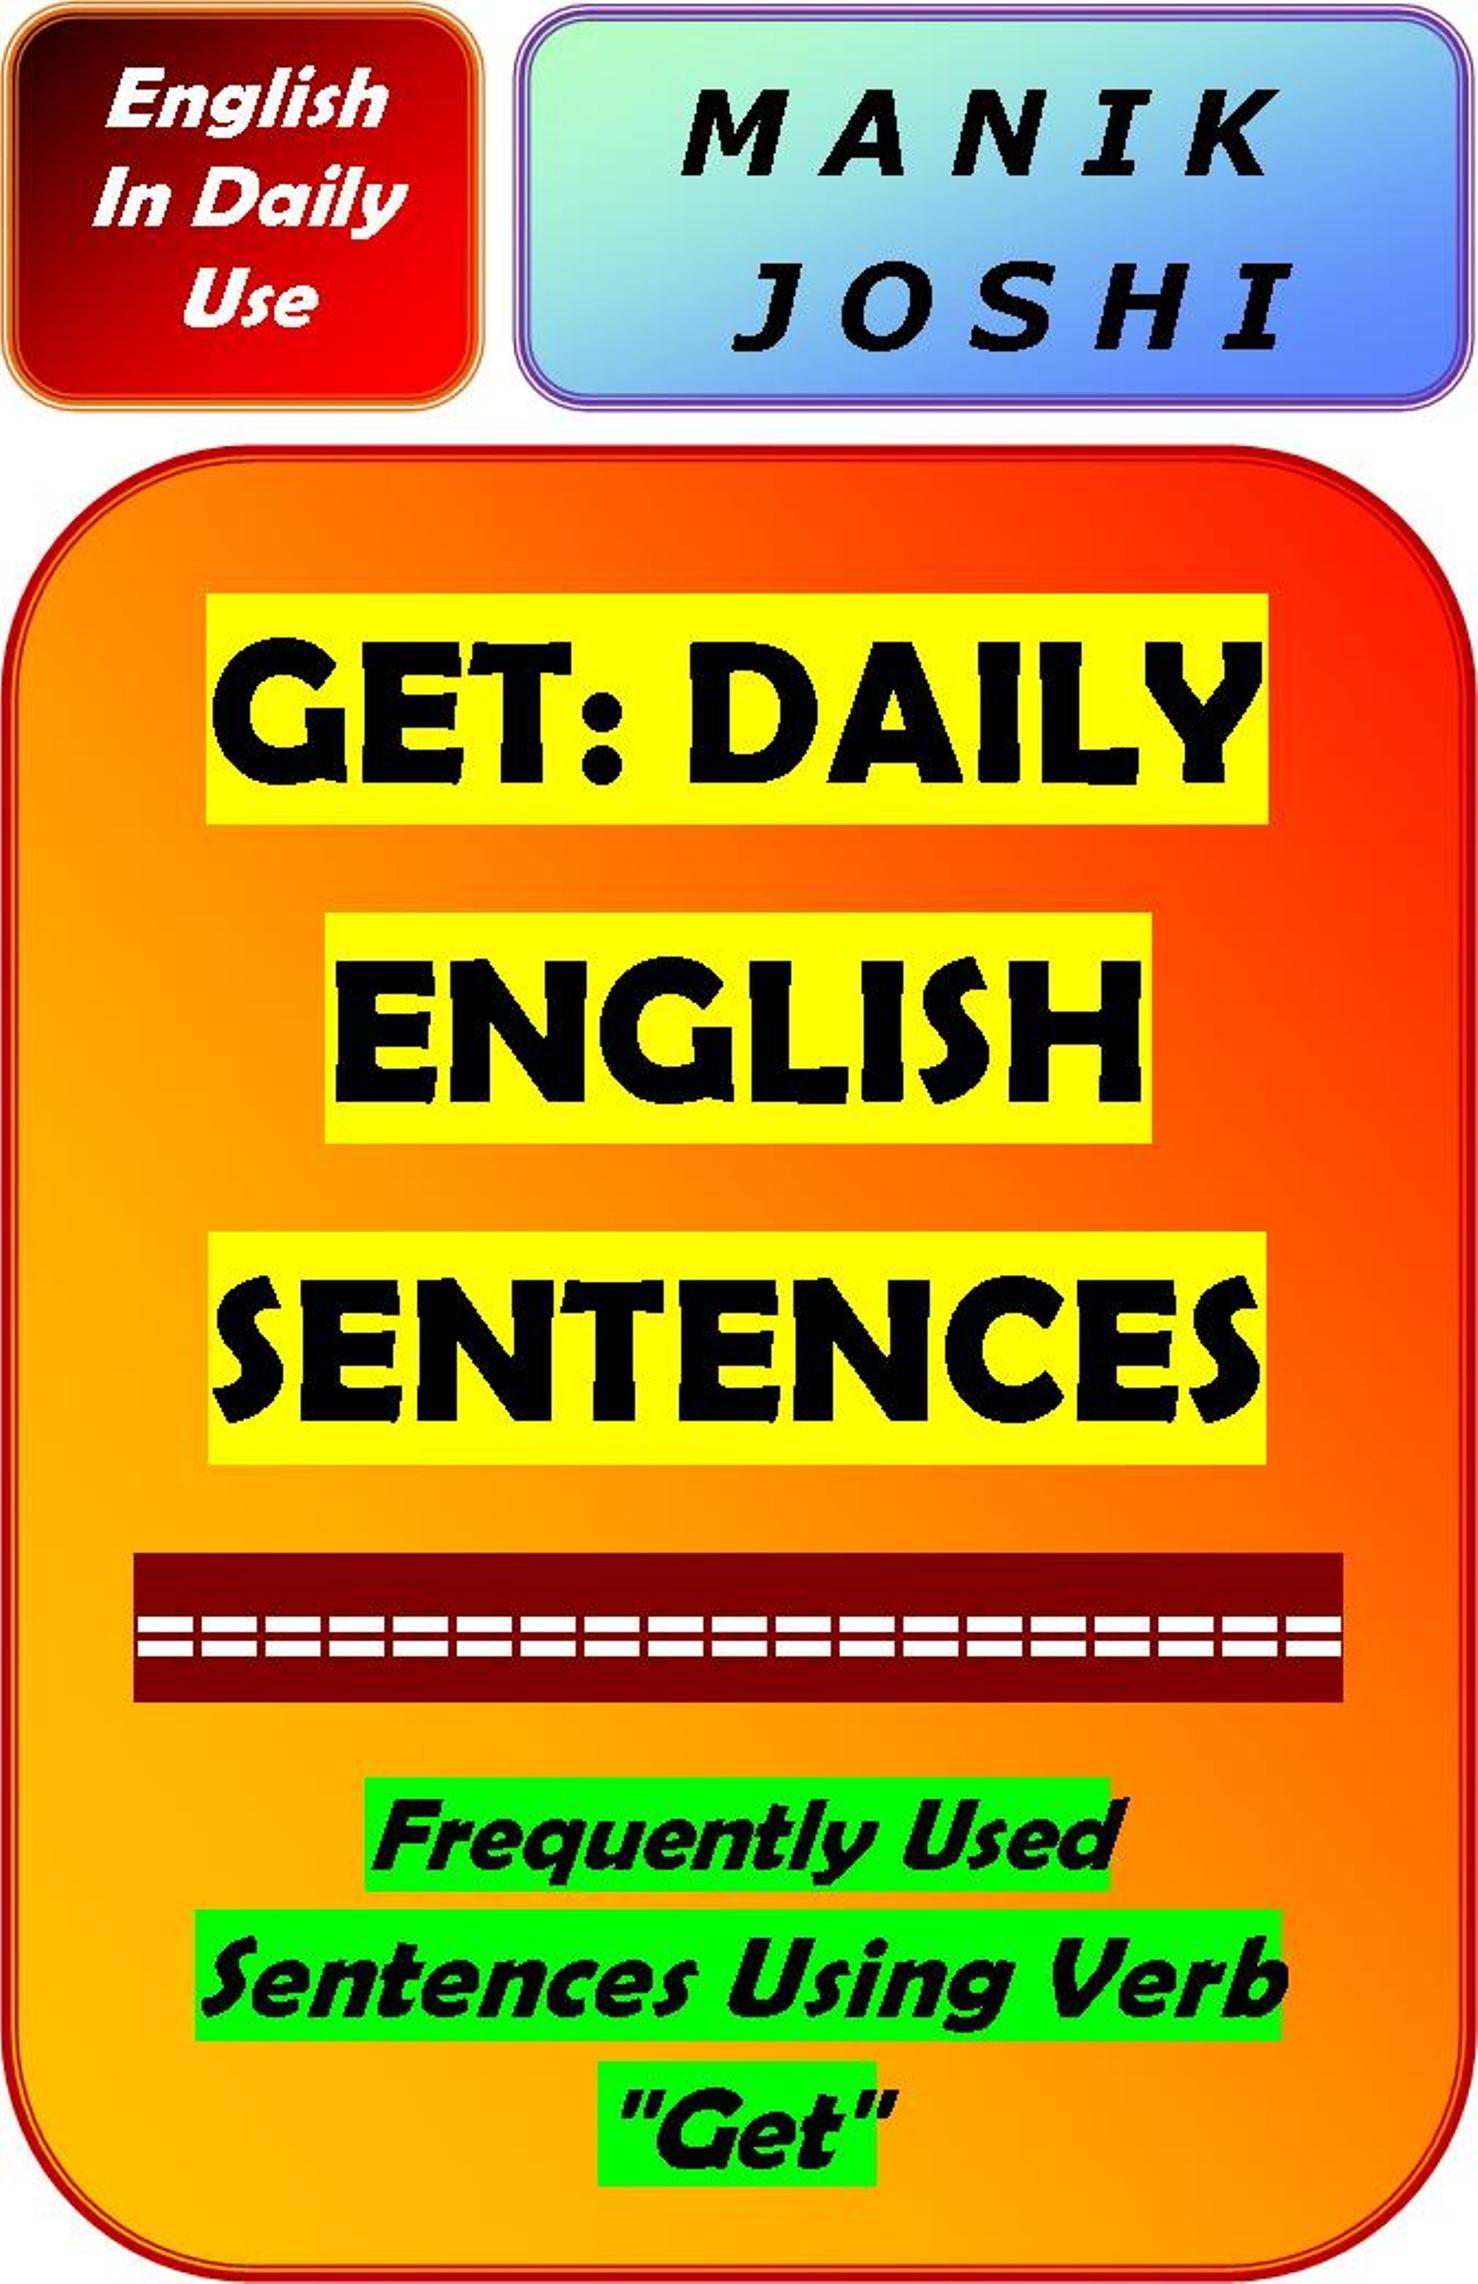 Get: Daily English Sentences